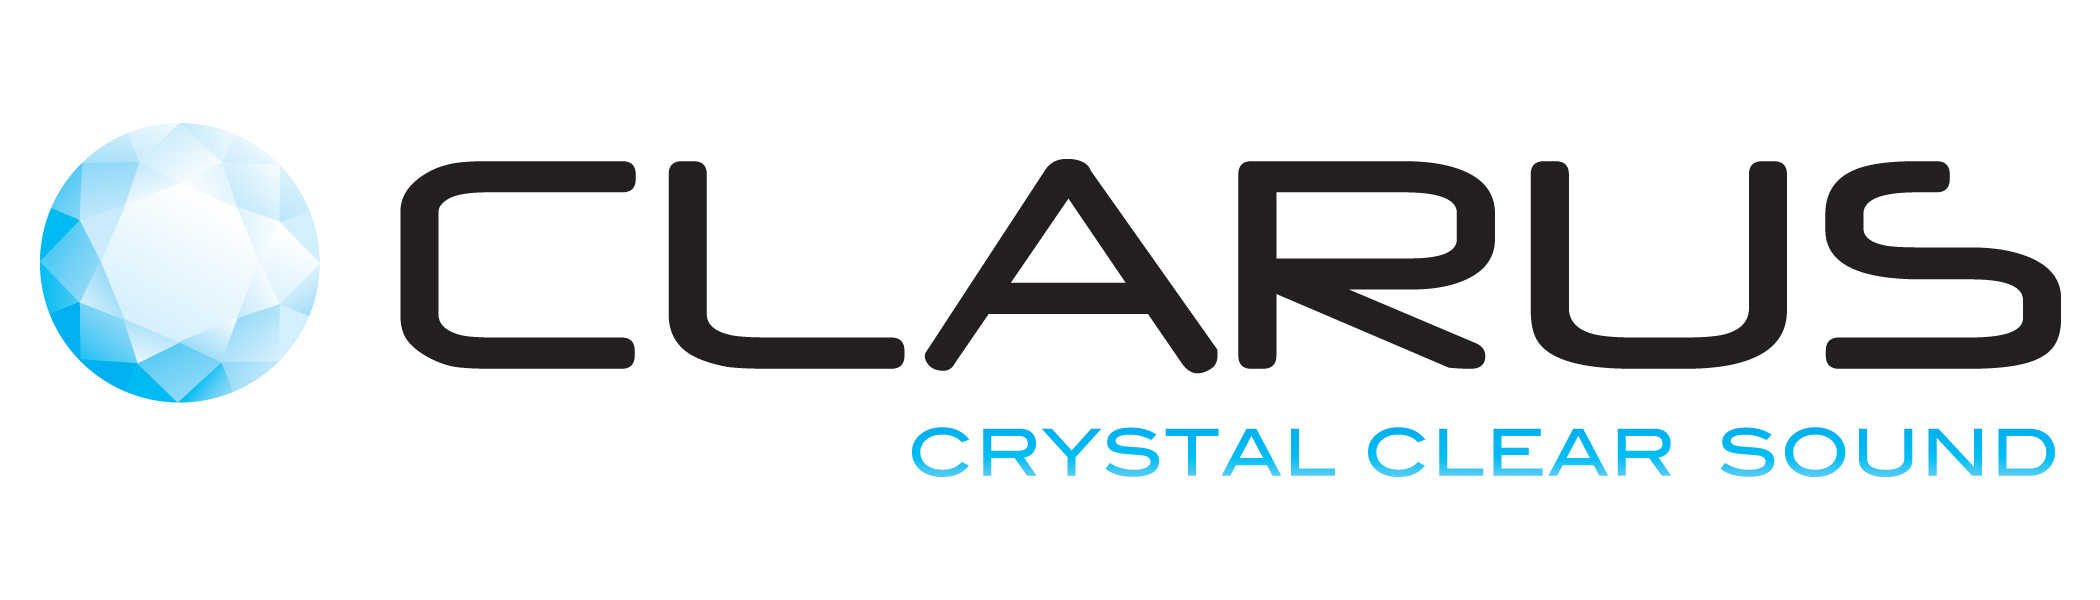 Clarus_Color_Logo_Tag_HighRes.jpg